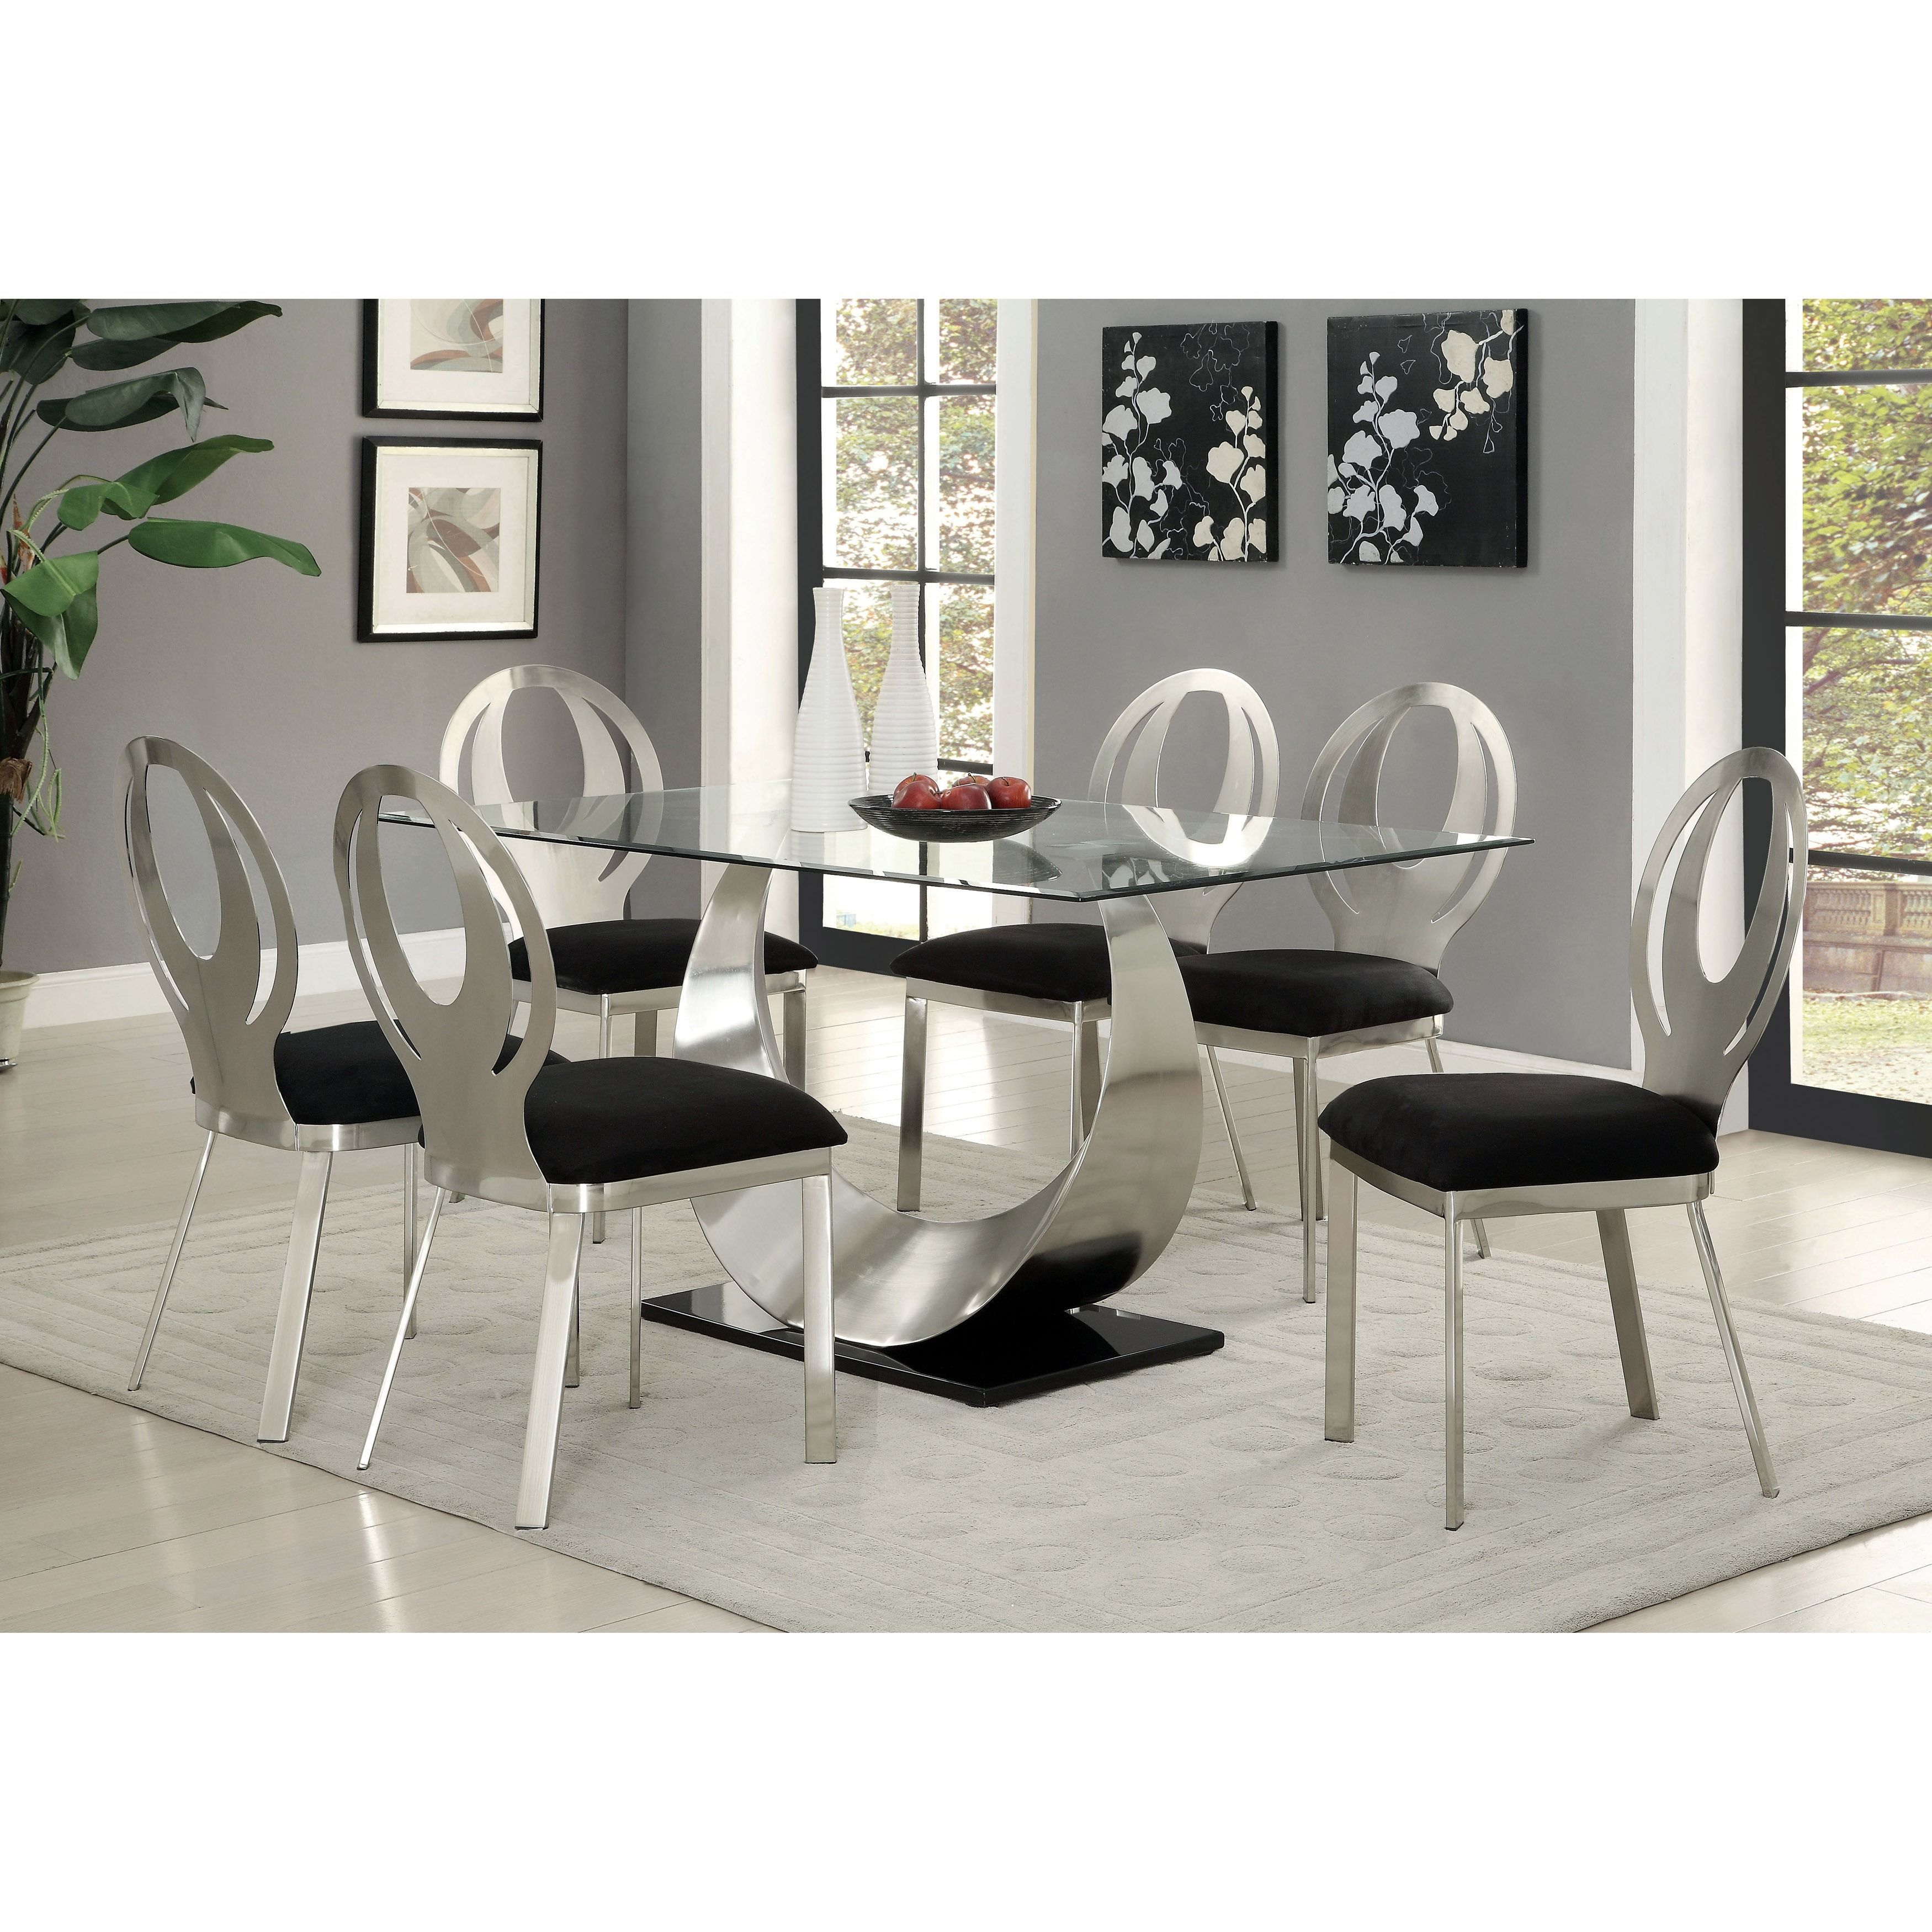 Overstock Com Online Shopping Bedding Furniture Electronics Jewelry Clothing More Metal Dining Table Dining Room Sets Dining Table